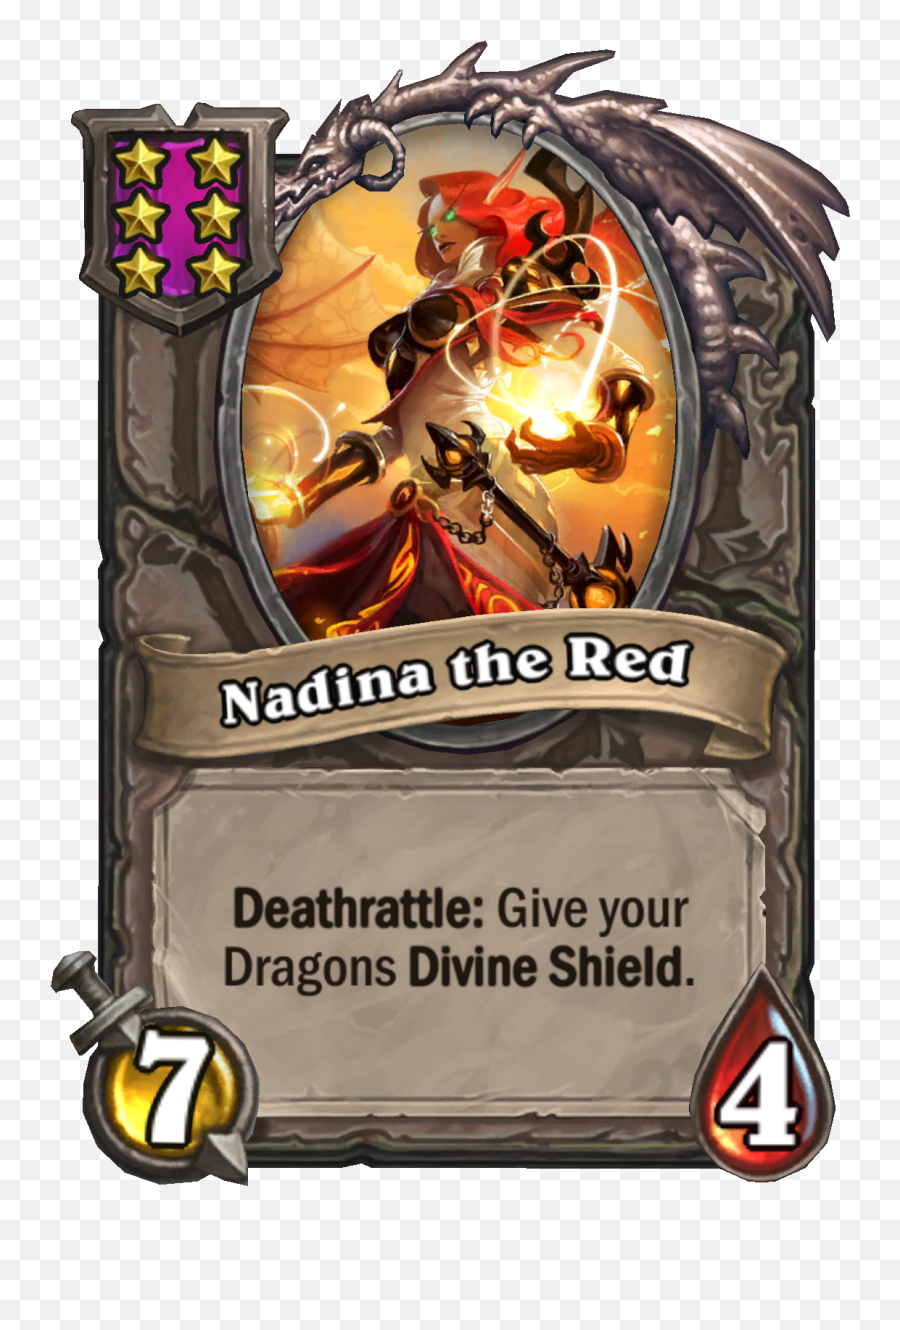 Hearthstoneu0027s Battlegrounds Adds Dragons In Massive 164 - Nadina The Red Hearthstone png